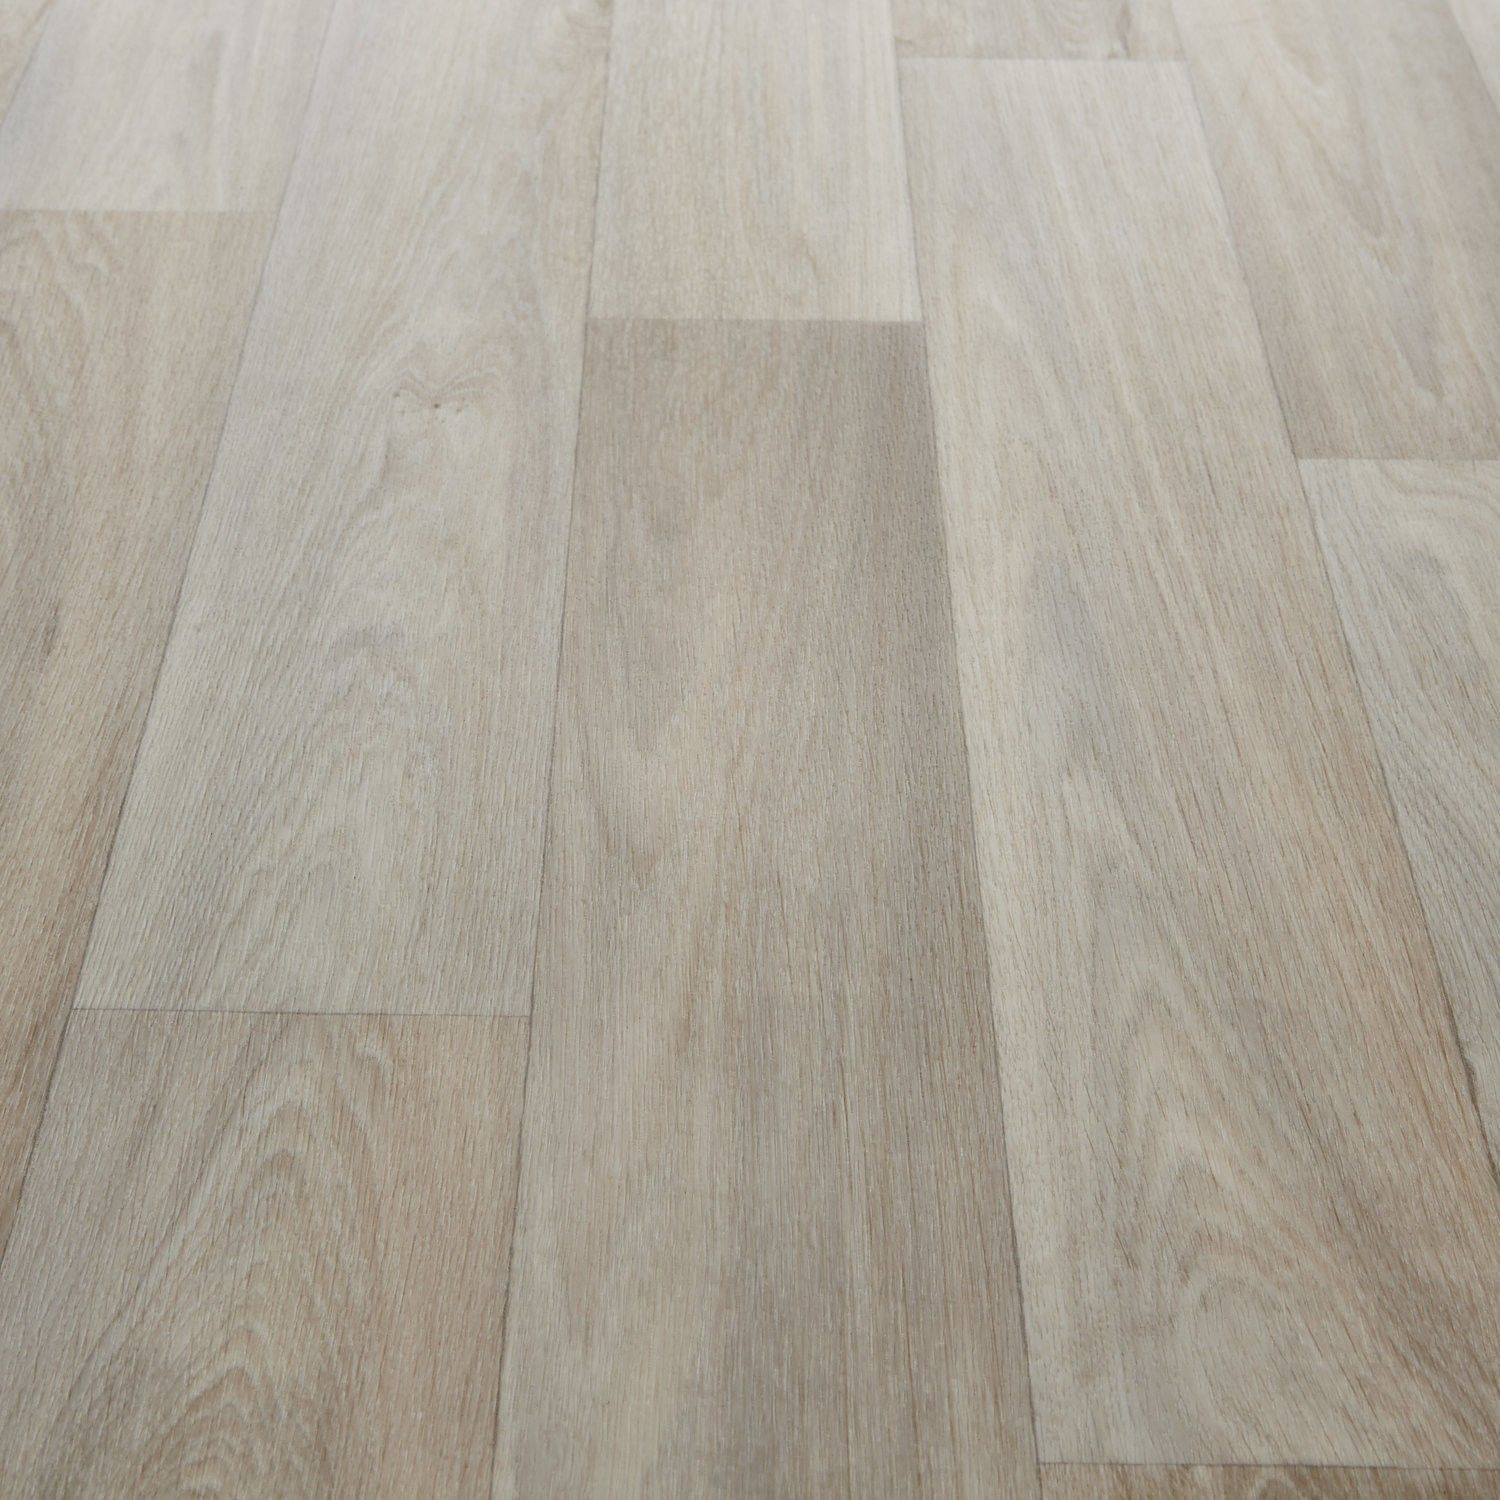 Planet ii 706 camargue white wood effect vinyl flooring for White kitchen vinyl floor